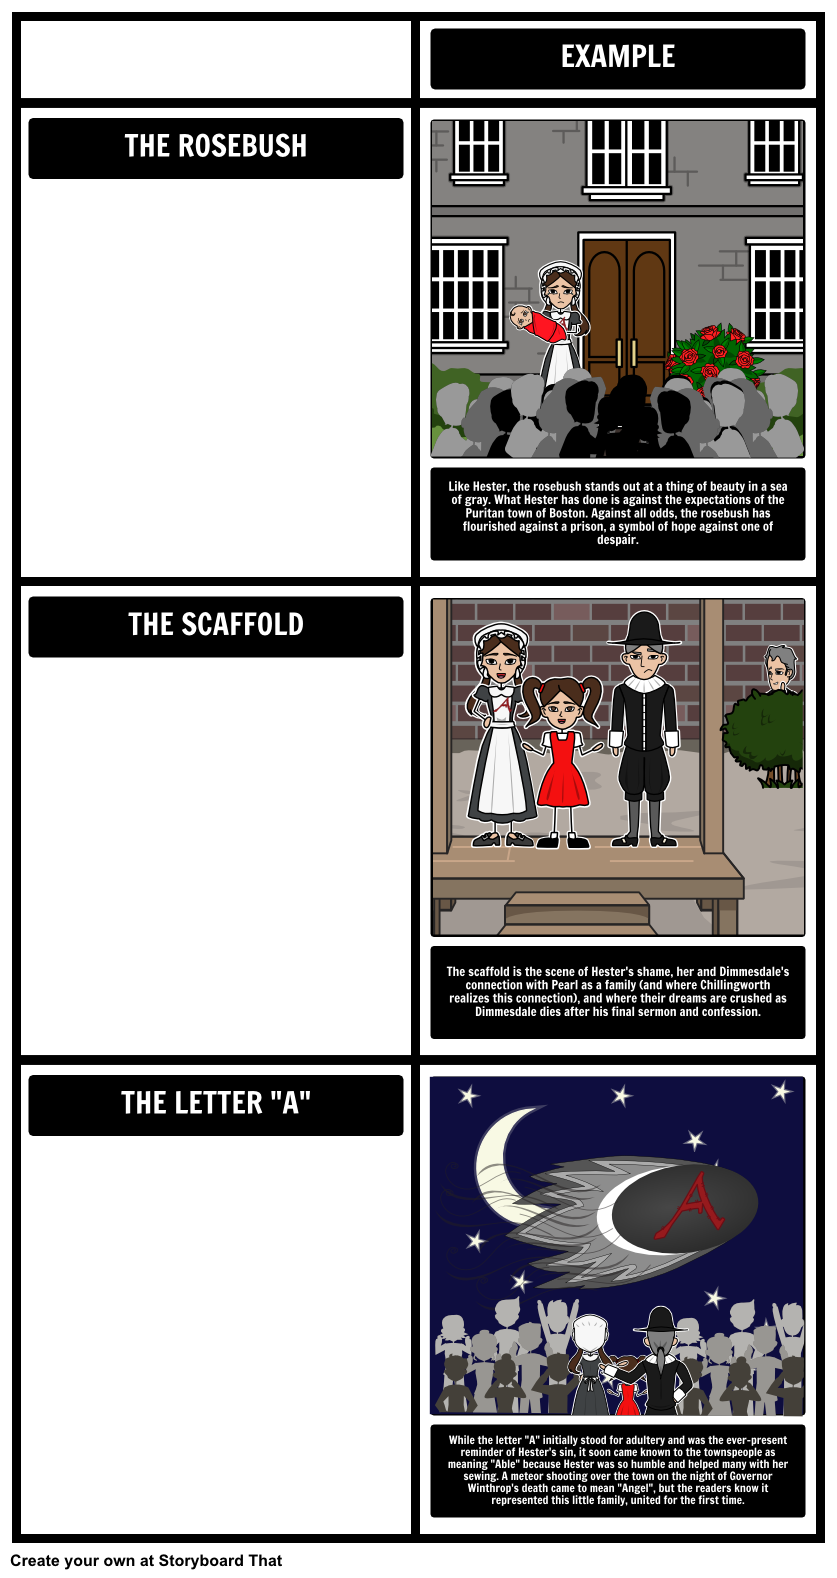 the scarlet letter theme themes symbols and motifs come alive the scarlet letter theme themes symbols and motifs come alive when you